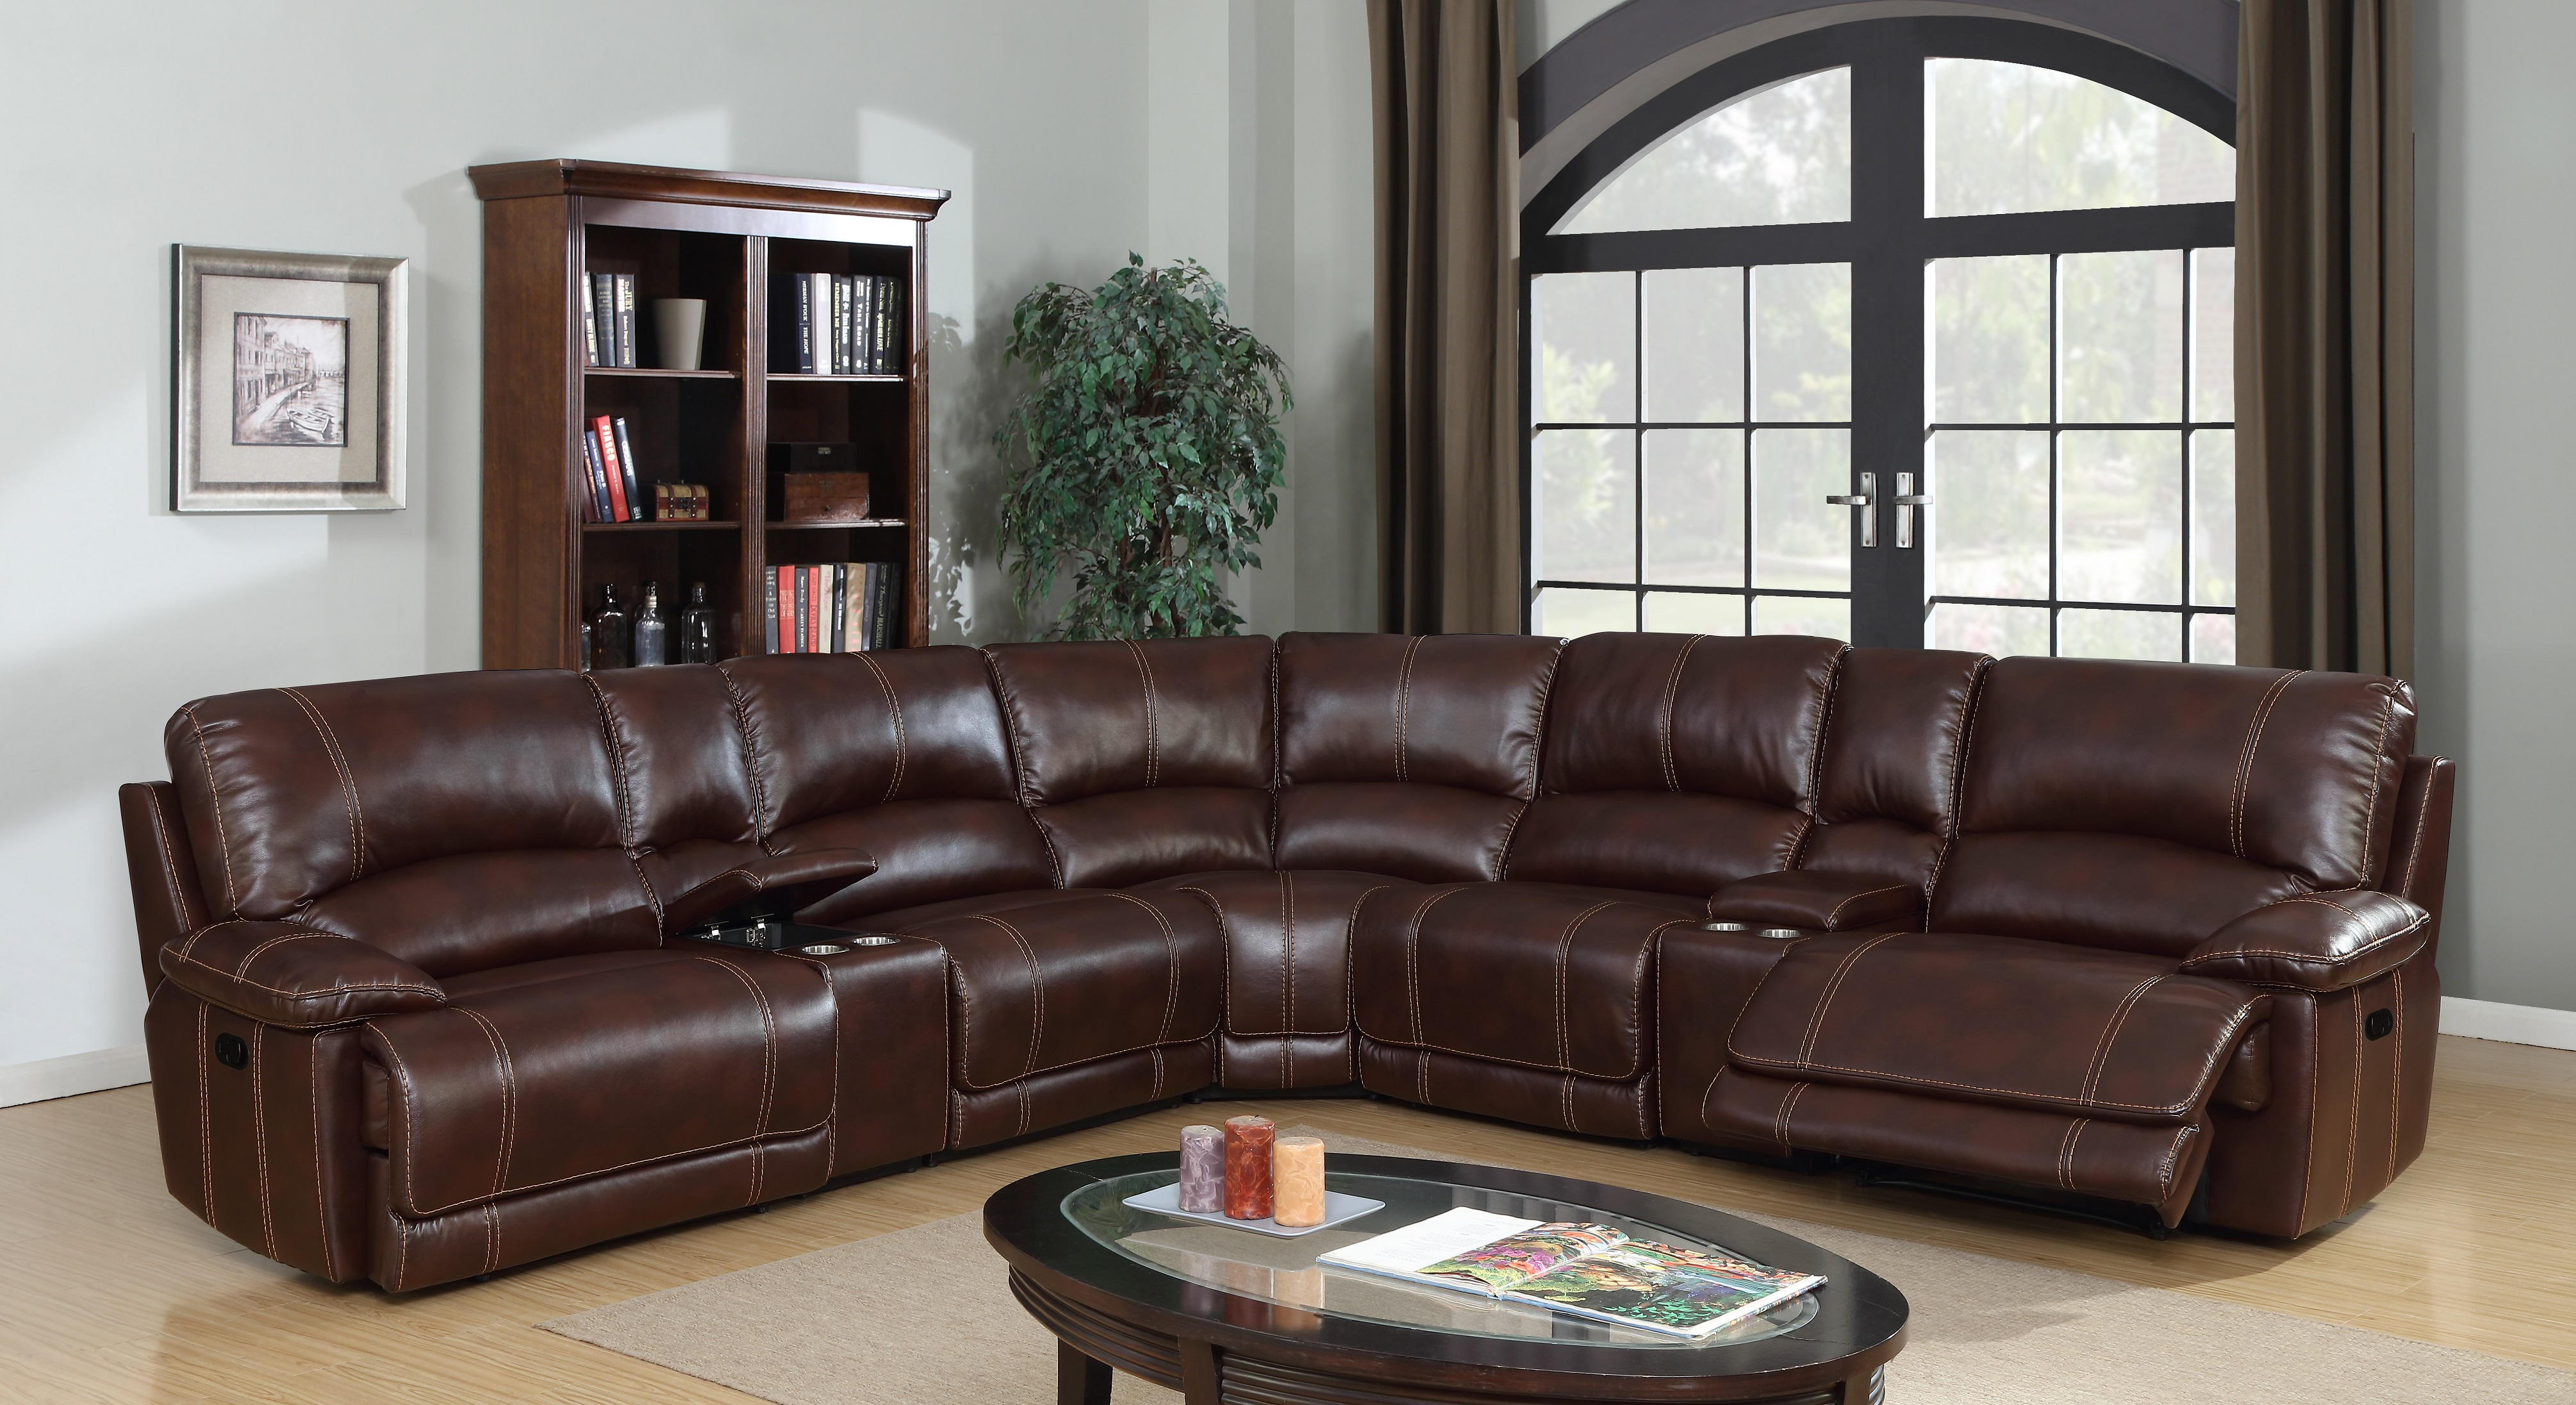 smart costco sofa leather super sectional couch designs and microfiber picture furniture